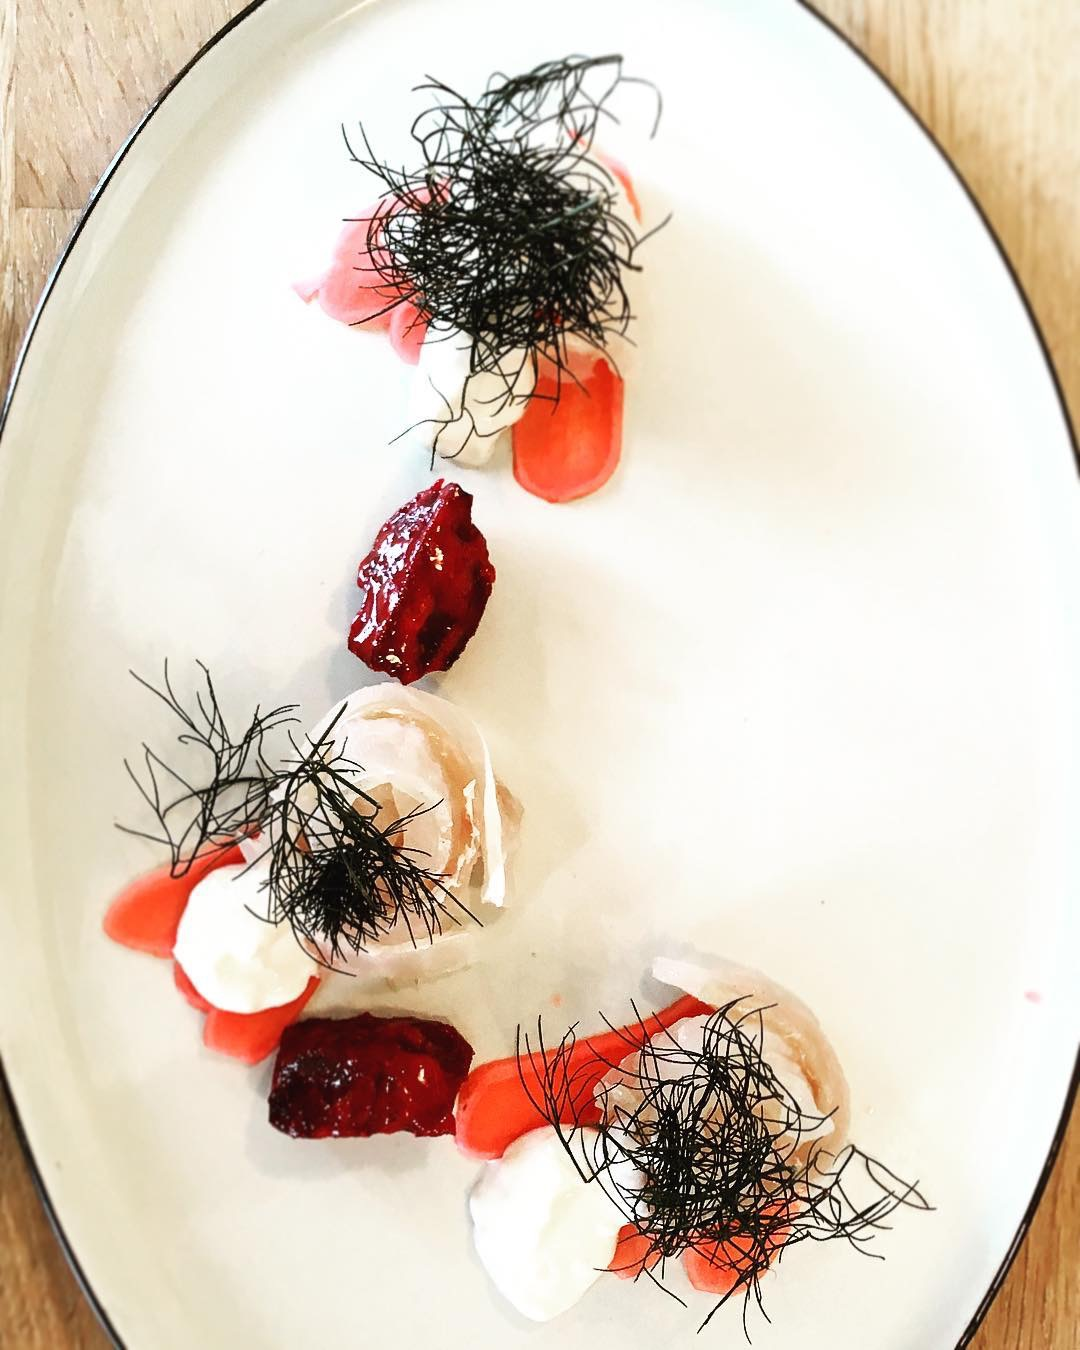 MATR: New Nordic Historic food by Chef Jonas Lorentzen